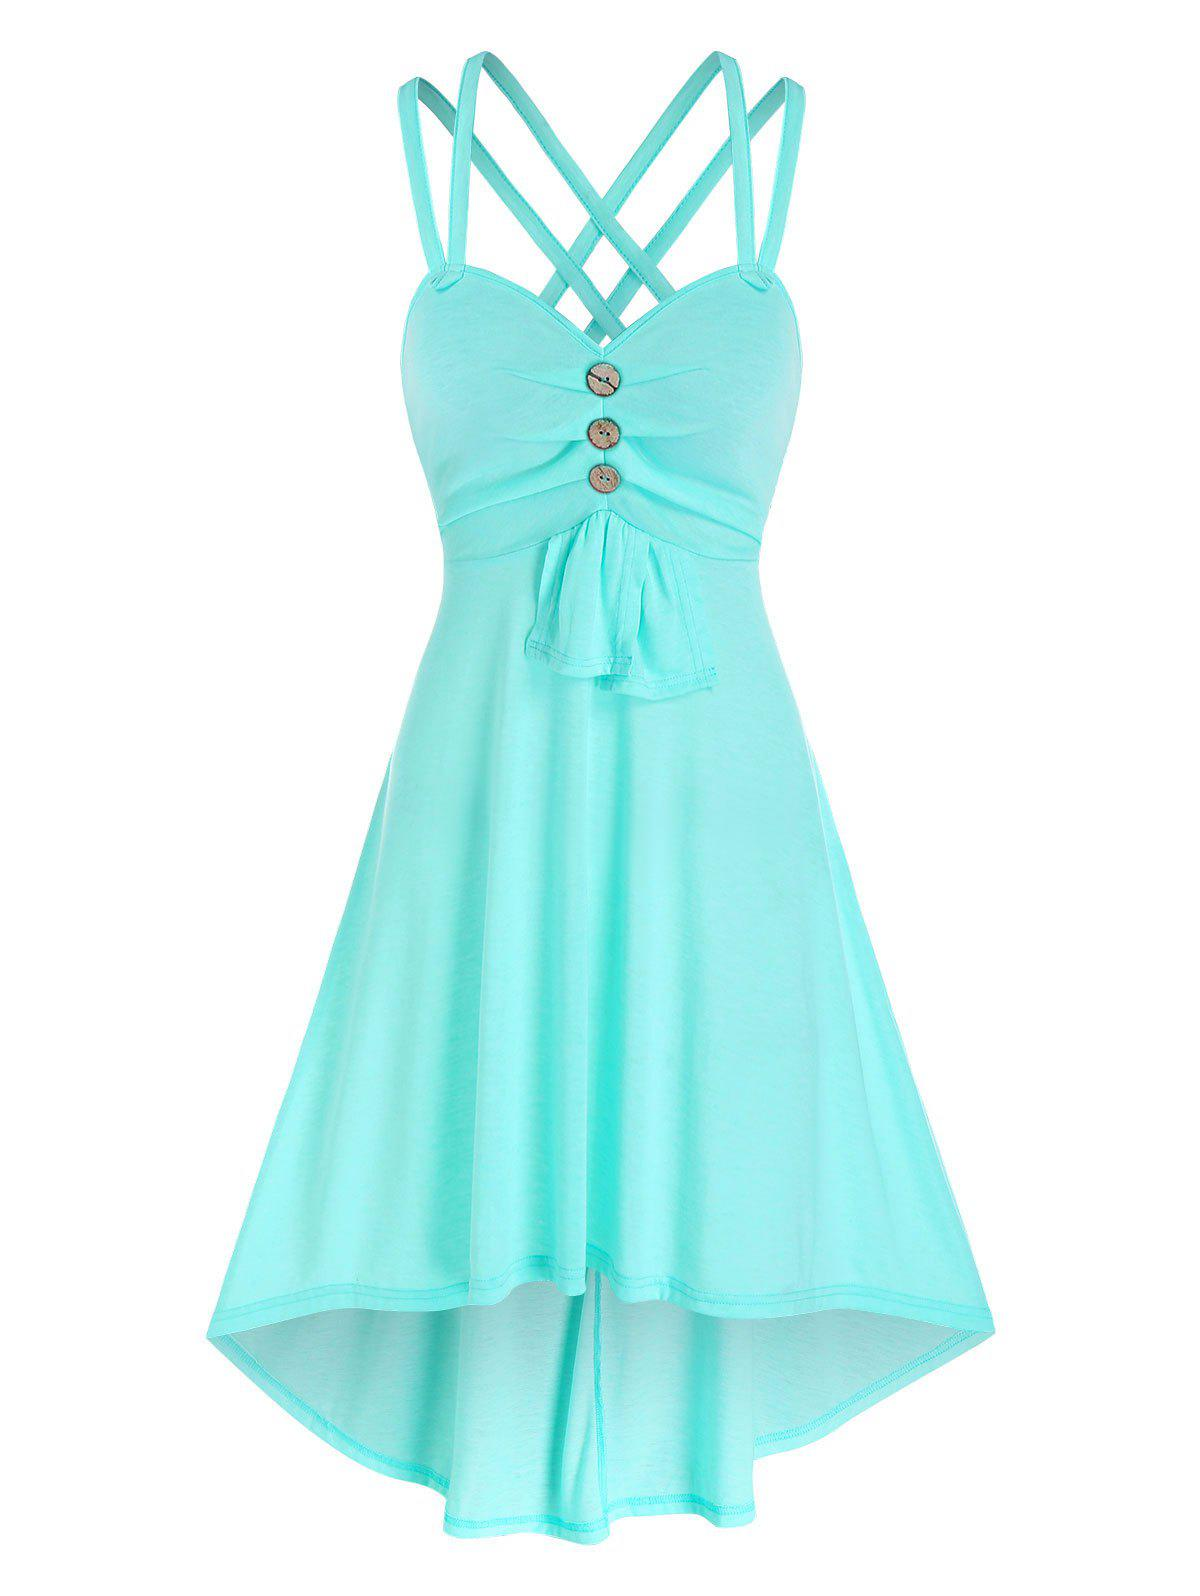 Mock Button High Low Strappy Dress - LIGHT BLUE 3XL